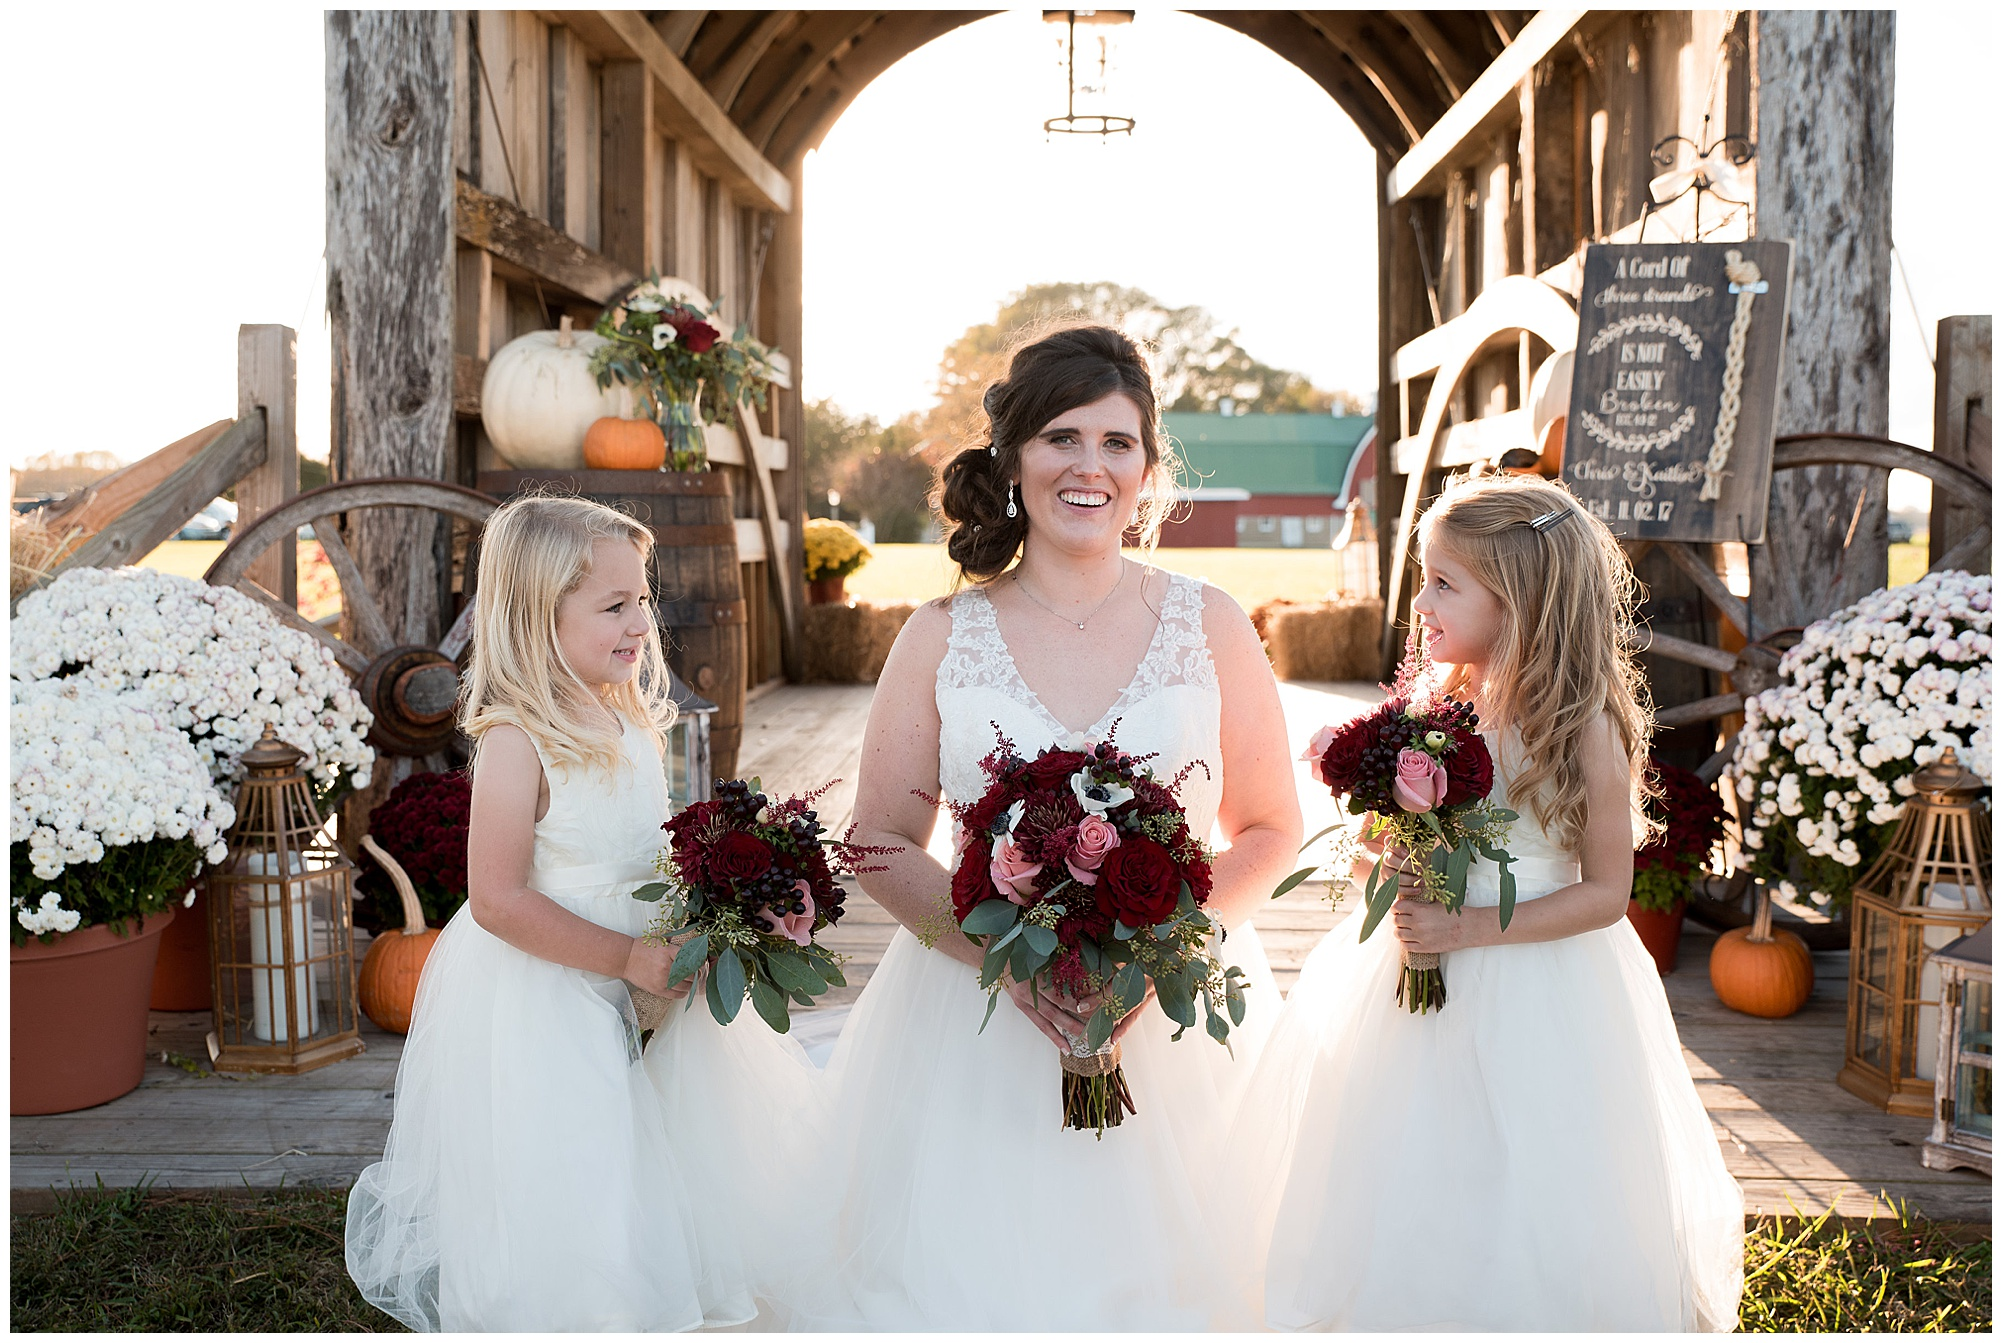 photo of bride and flower girls. wedding photos outdoors at covered bridge inn in lewes delaware. historic wedding barn venue on the eastern shore. fall wedding in november with rustic decor theme.